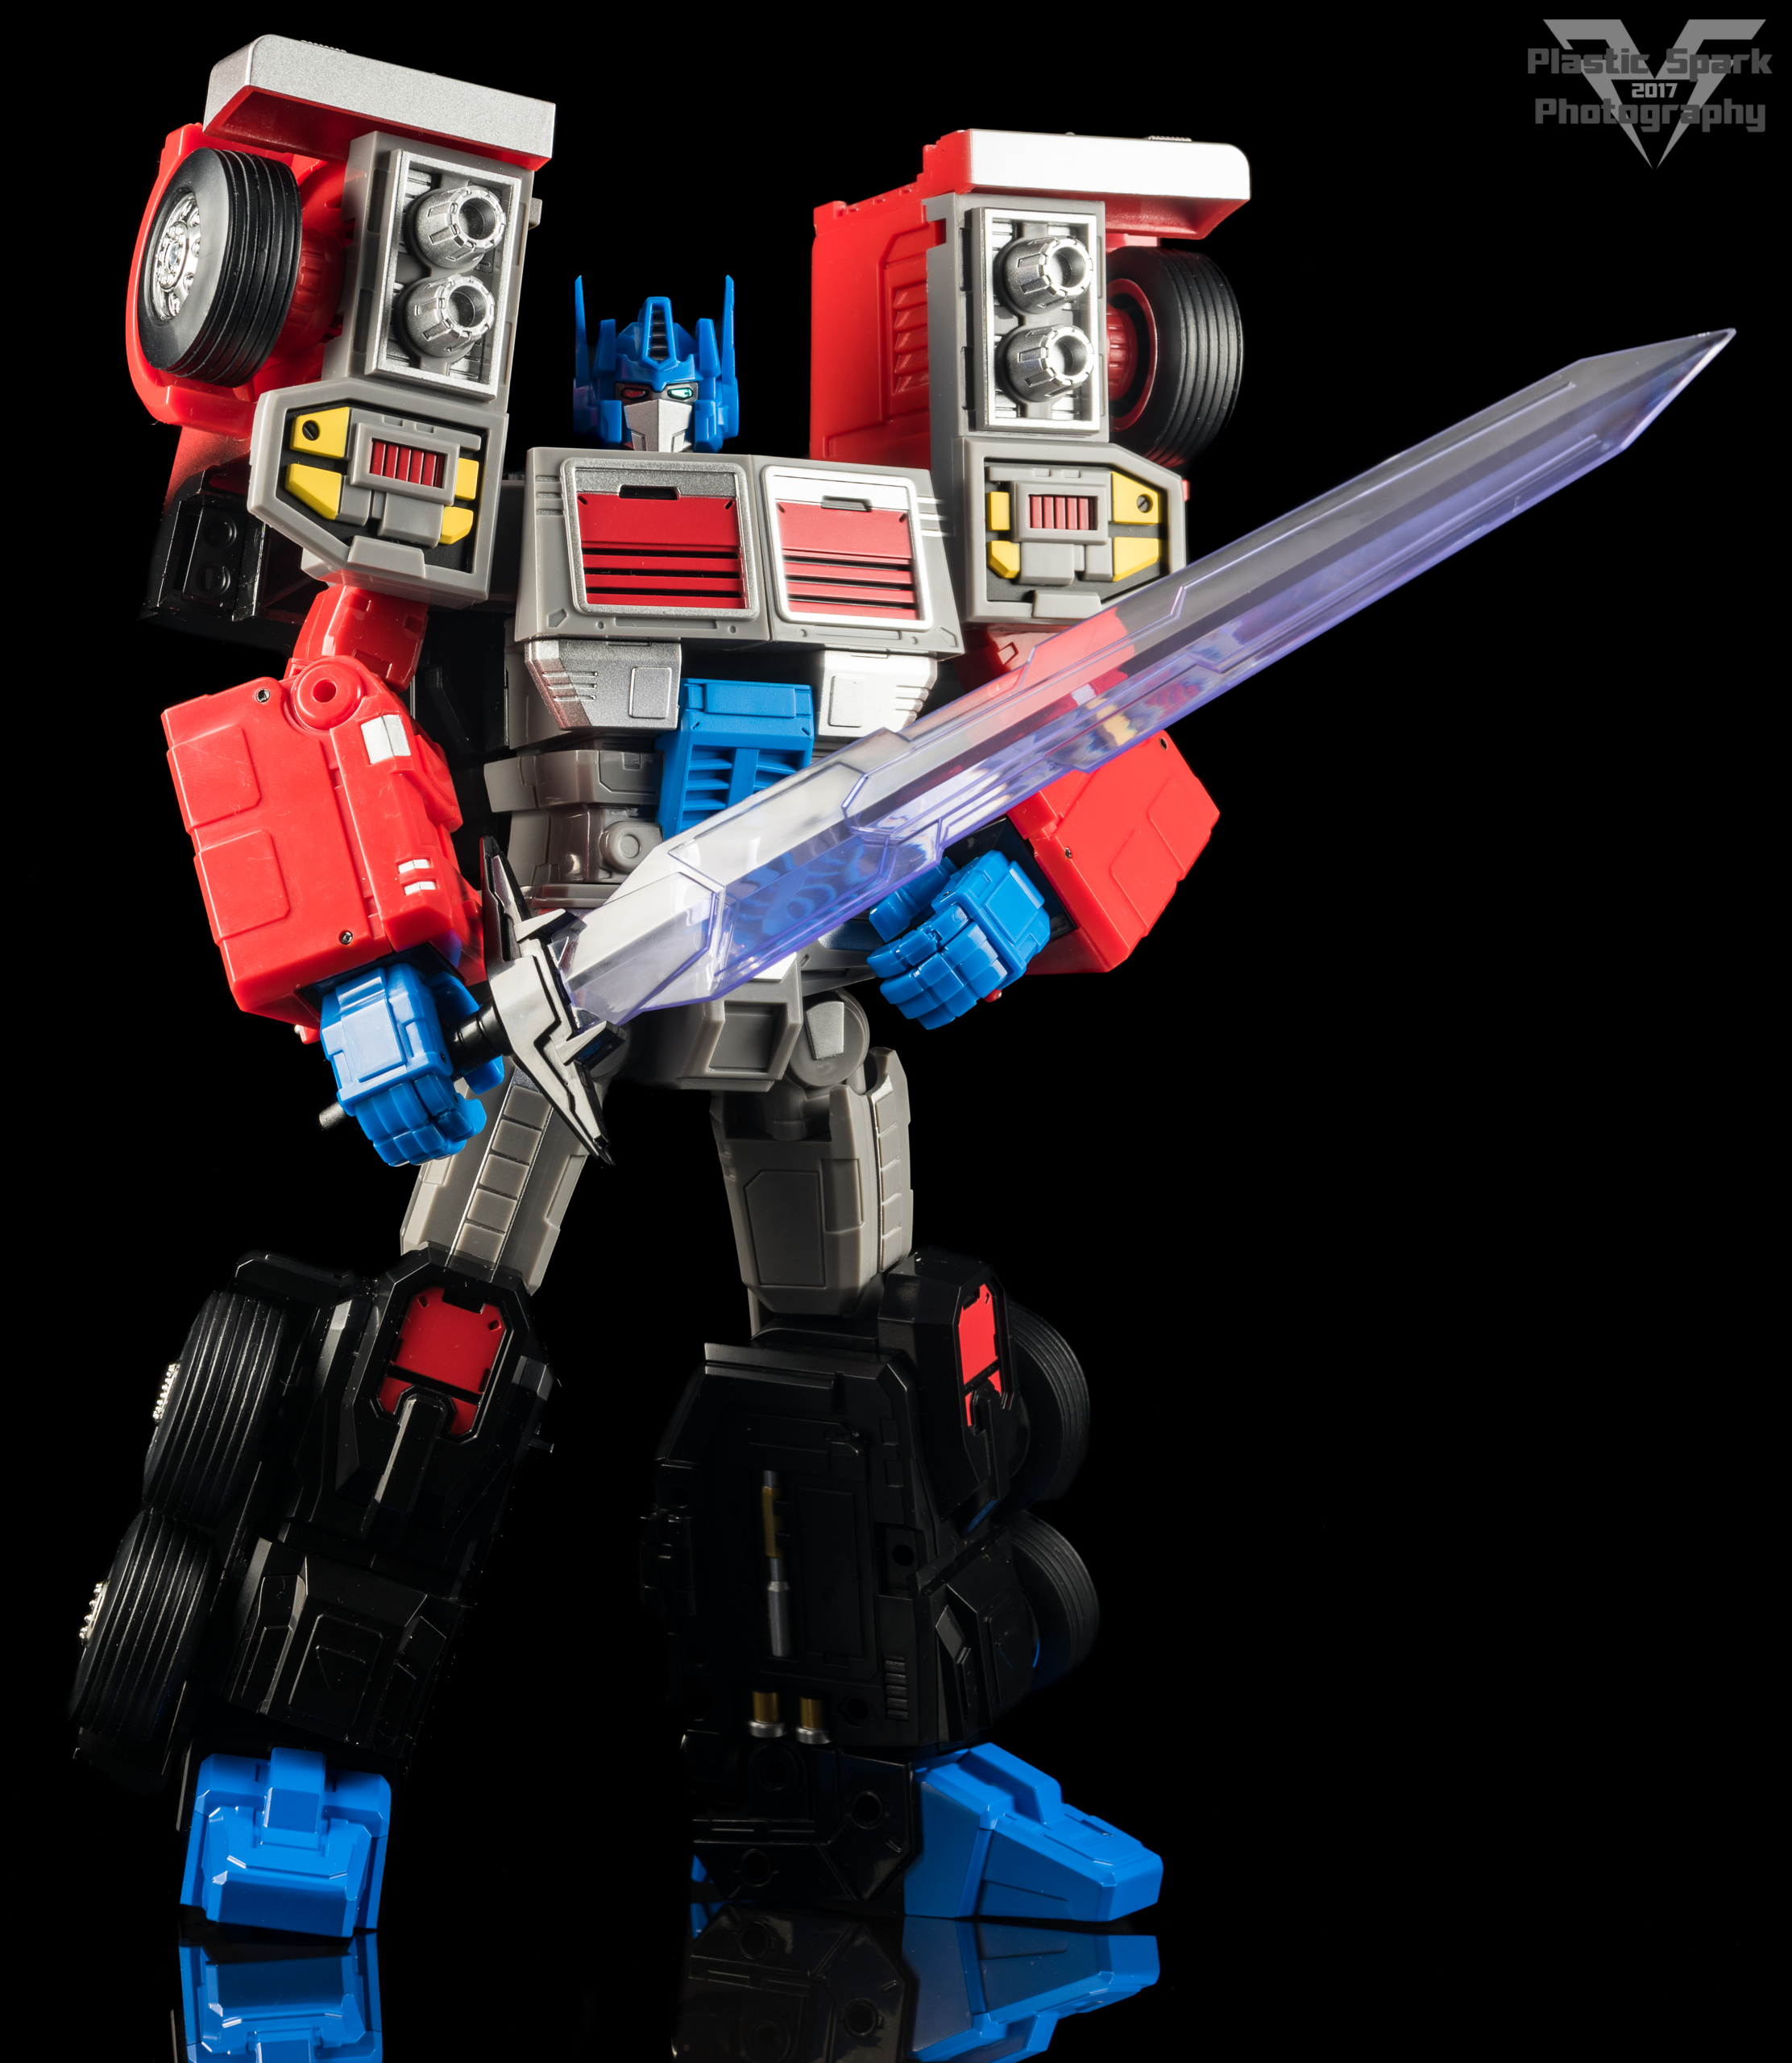 Fans-Hobby-MB-04-Gunfighter-II-(27-of-61).png